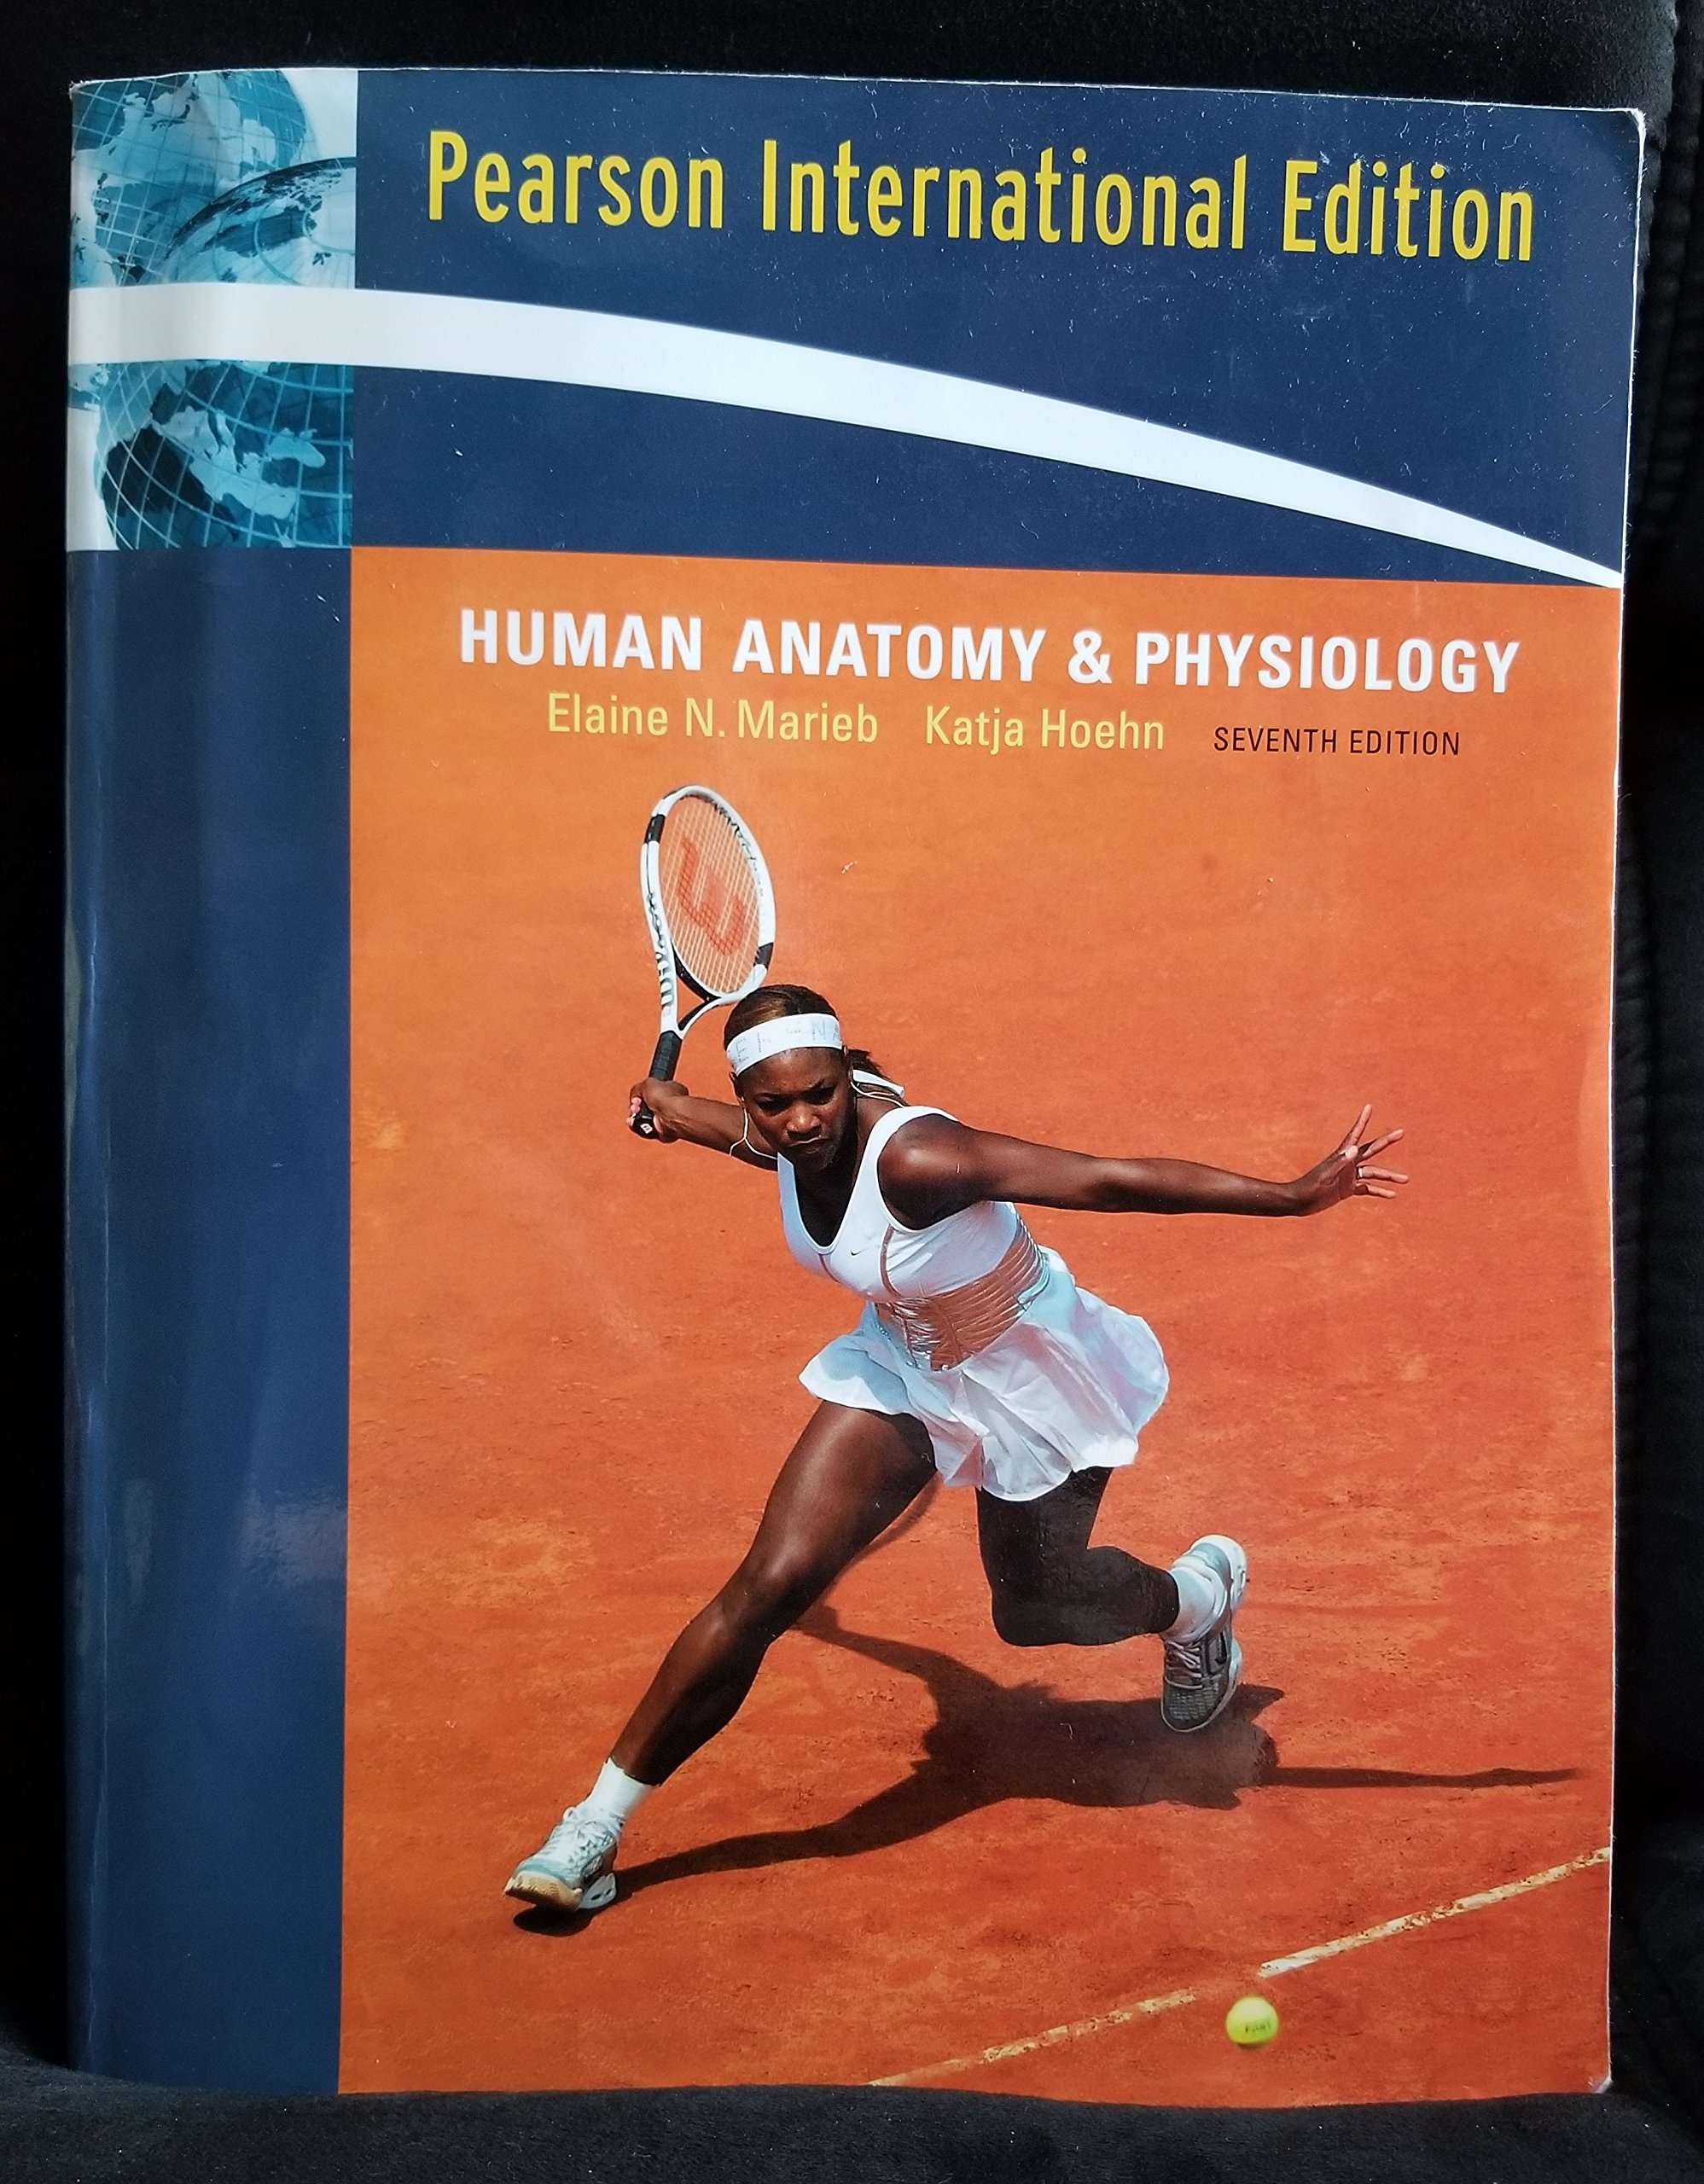 Human Anatomy And Physiology 7th Edition Elaine Nicpon Marieb